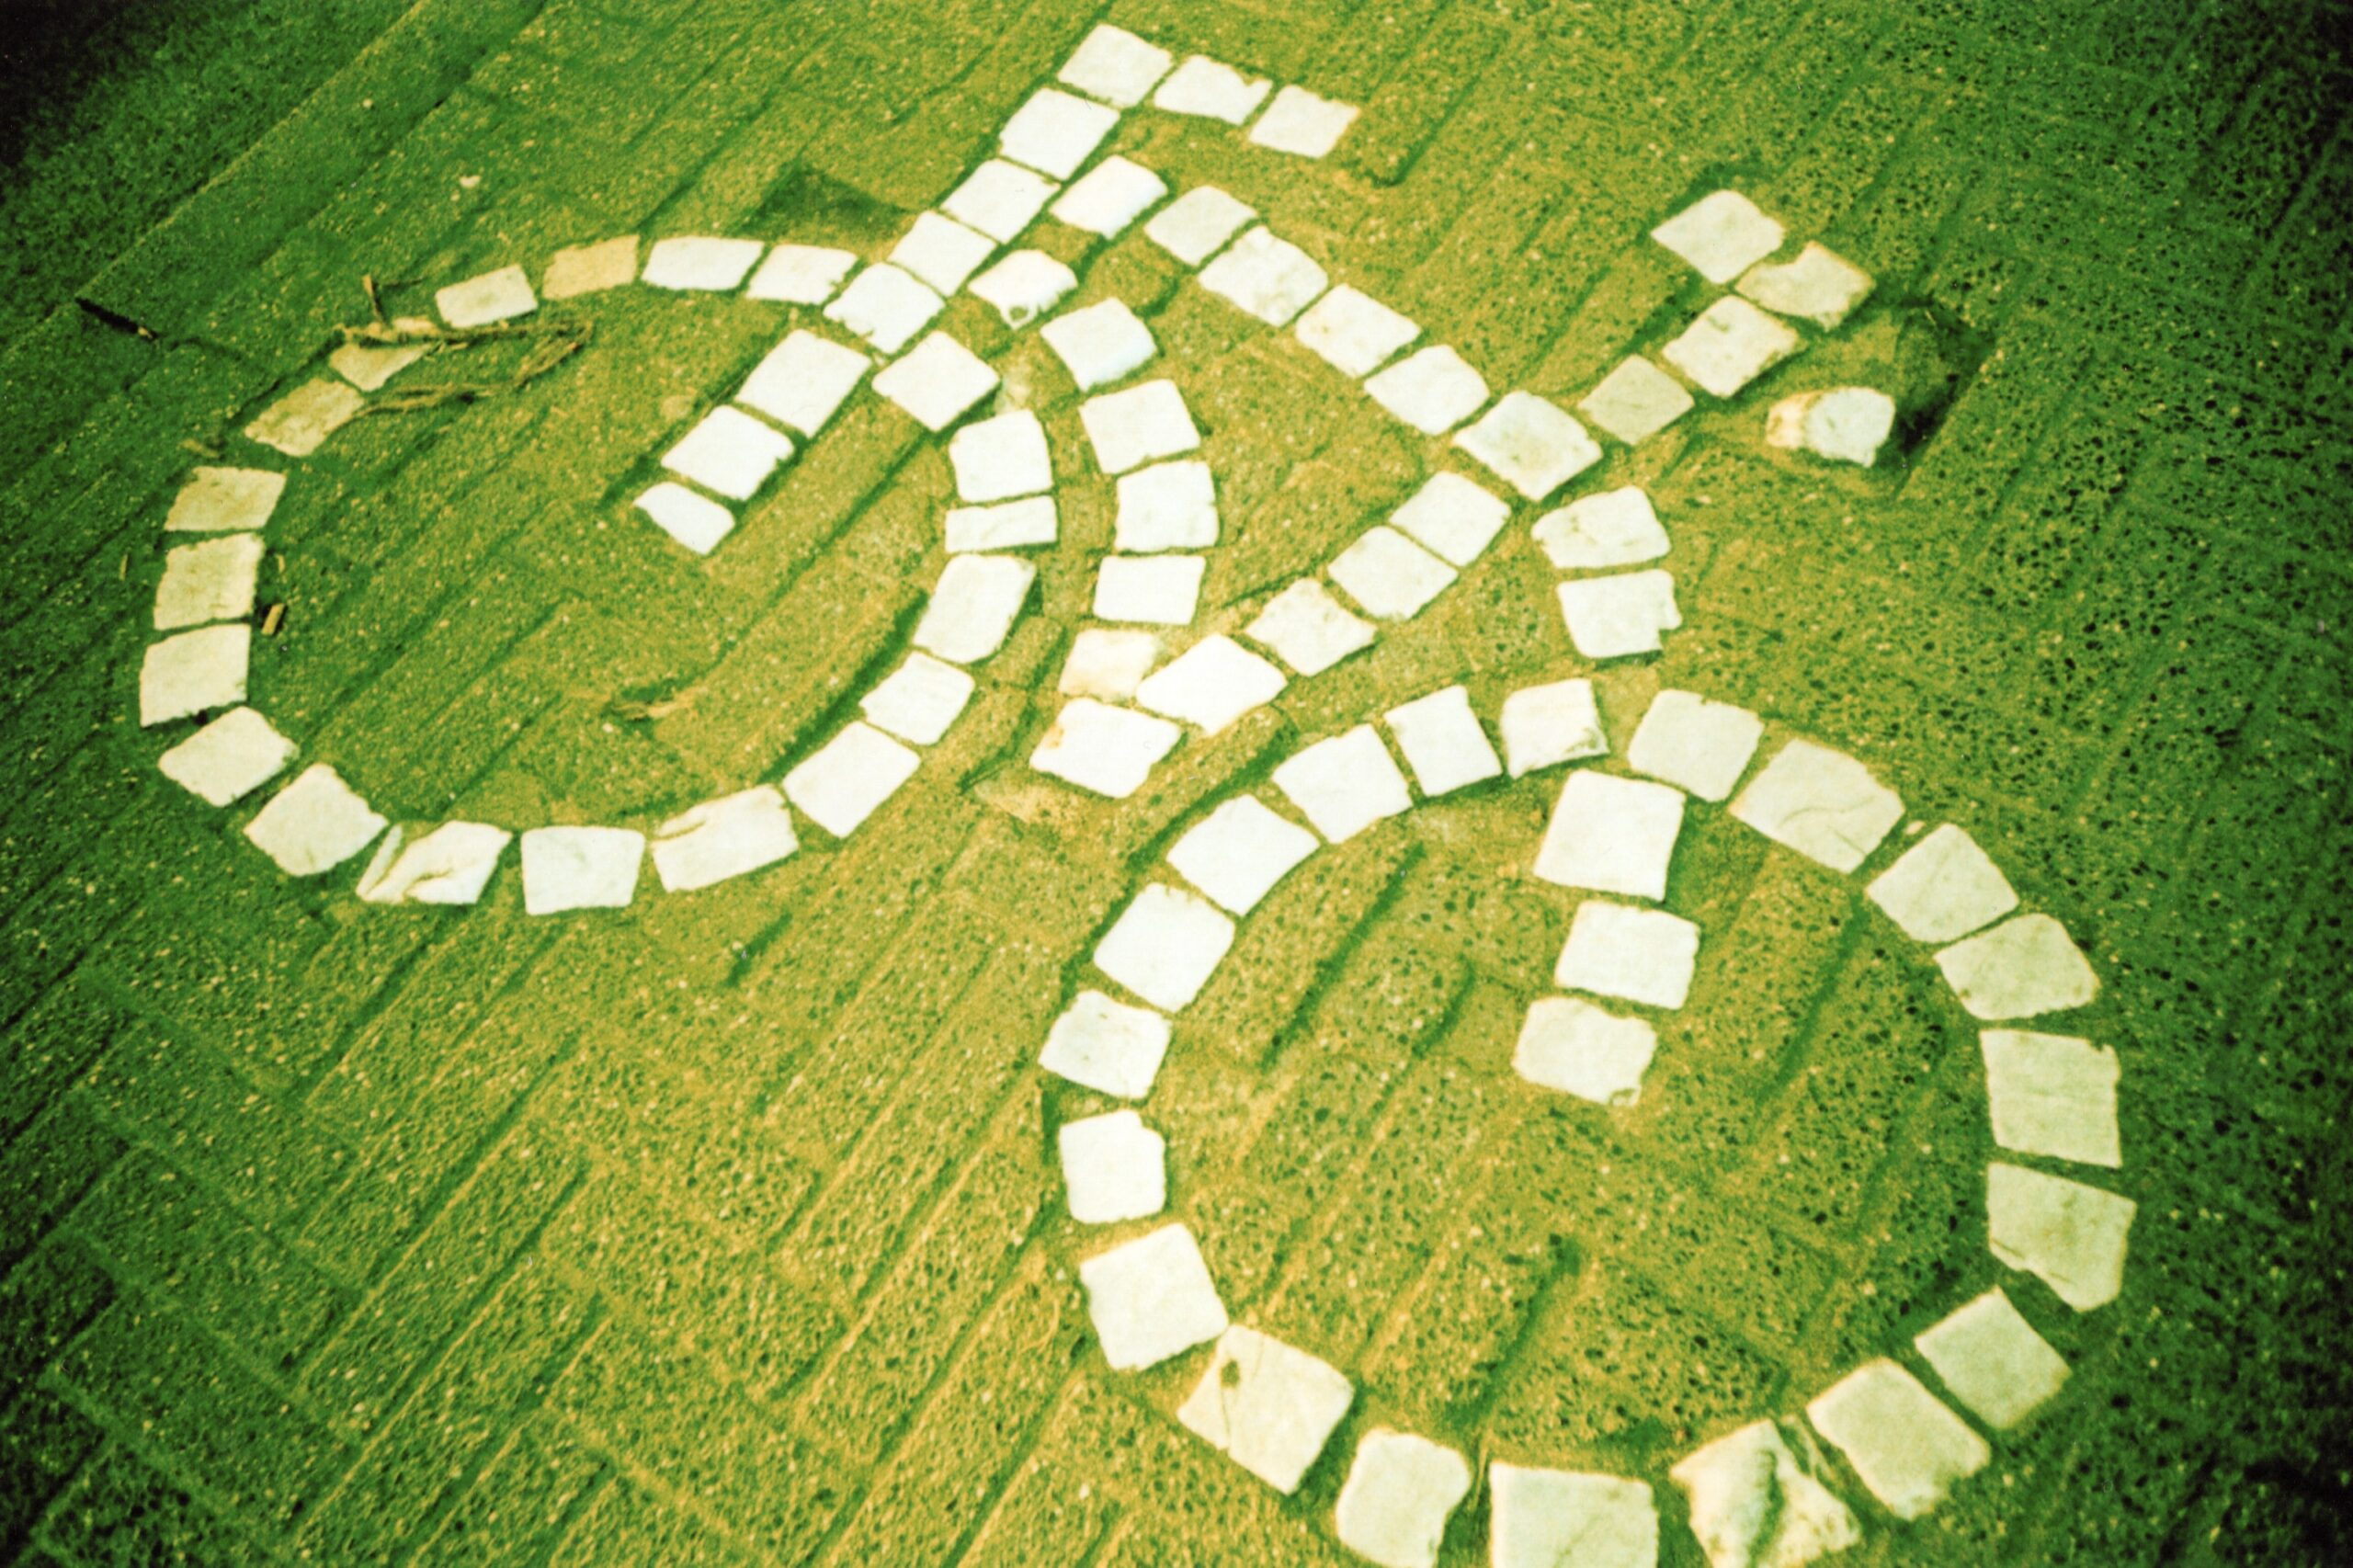 aerial view of a large bicycle shape made out of white stones on green grass